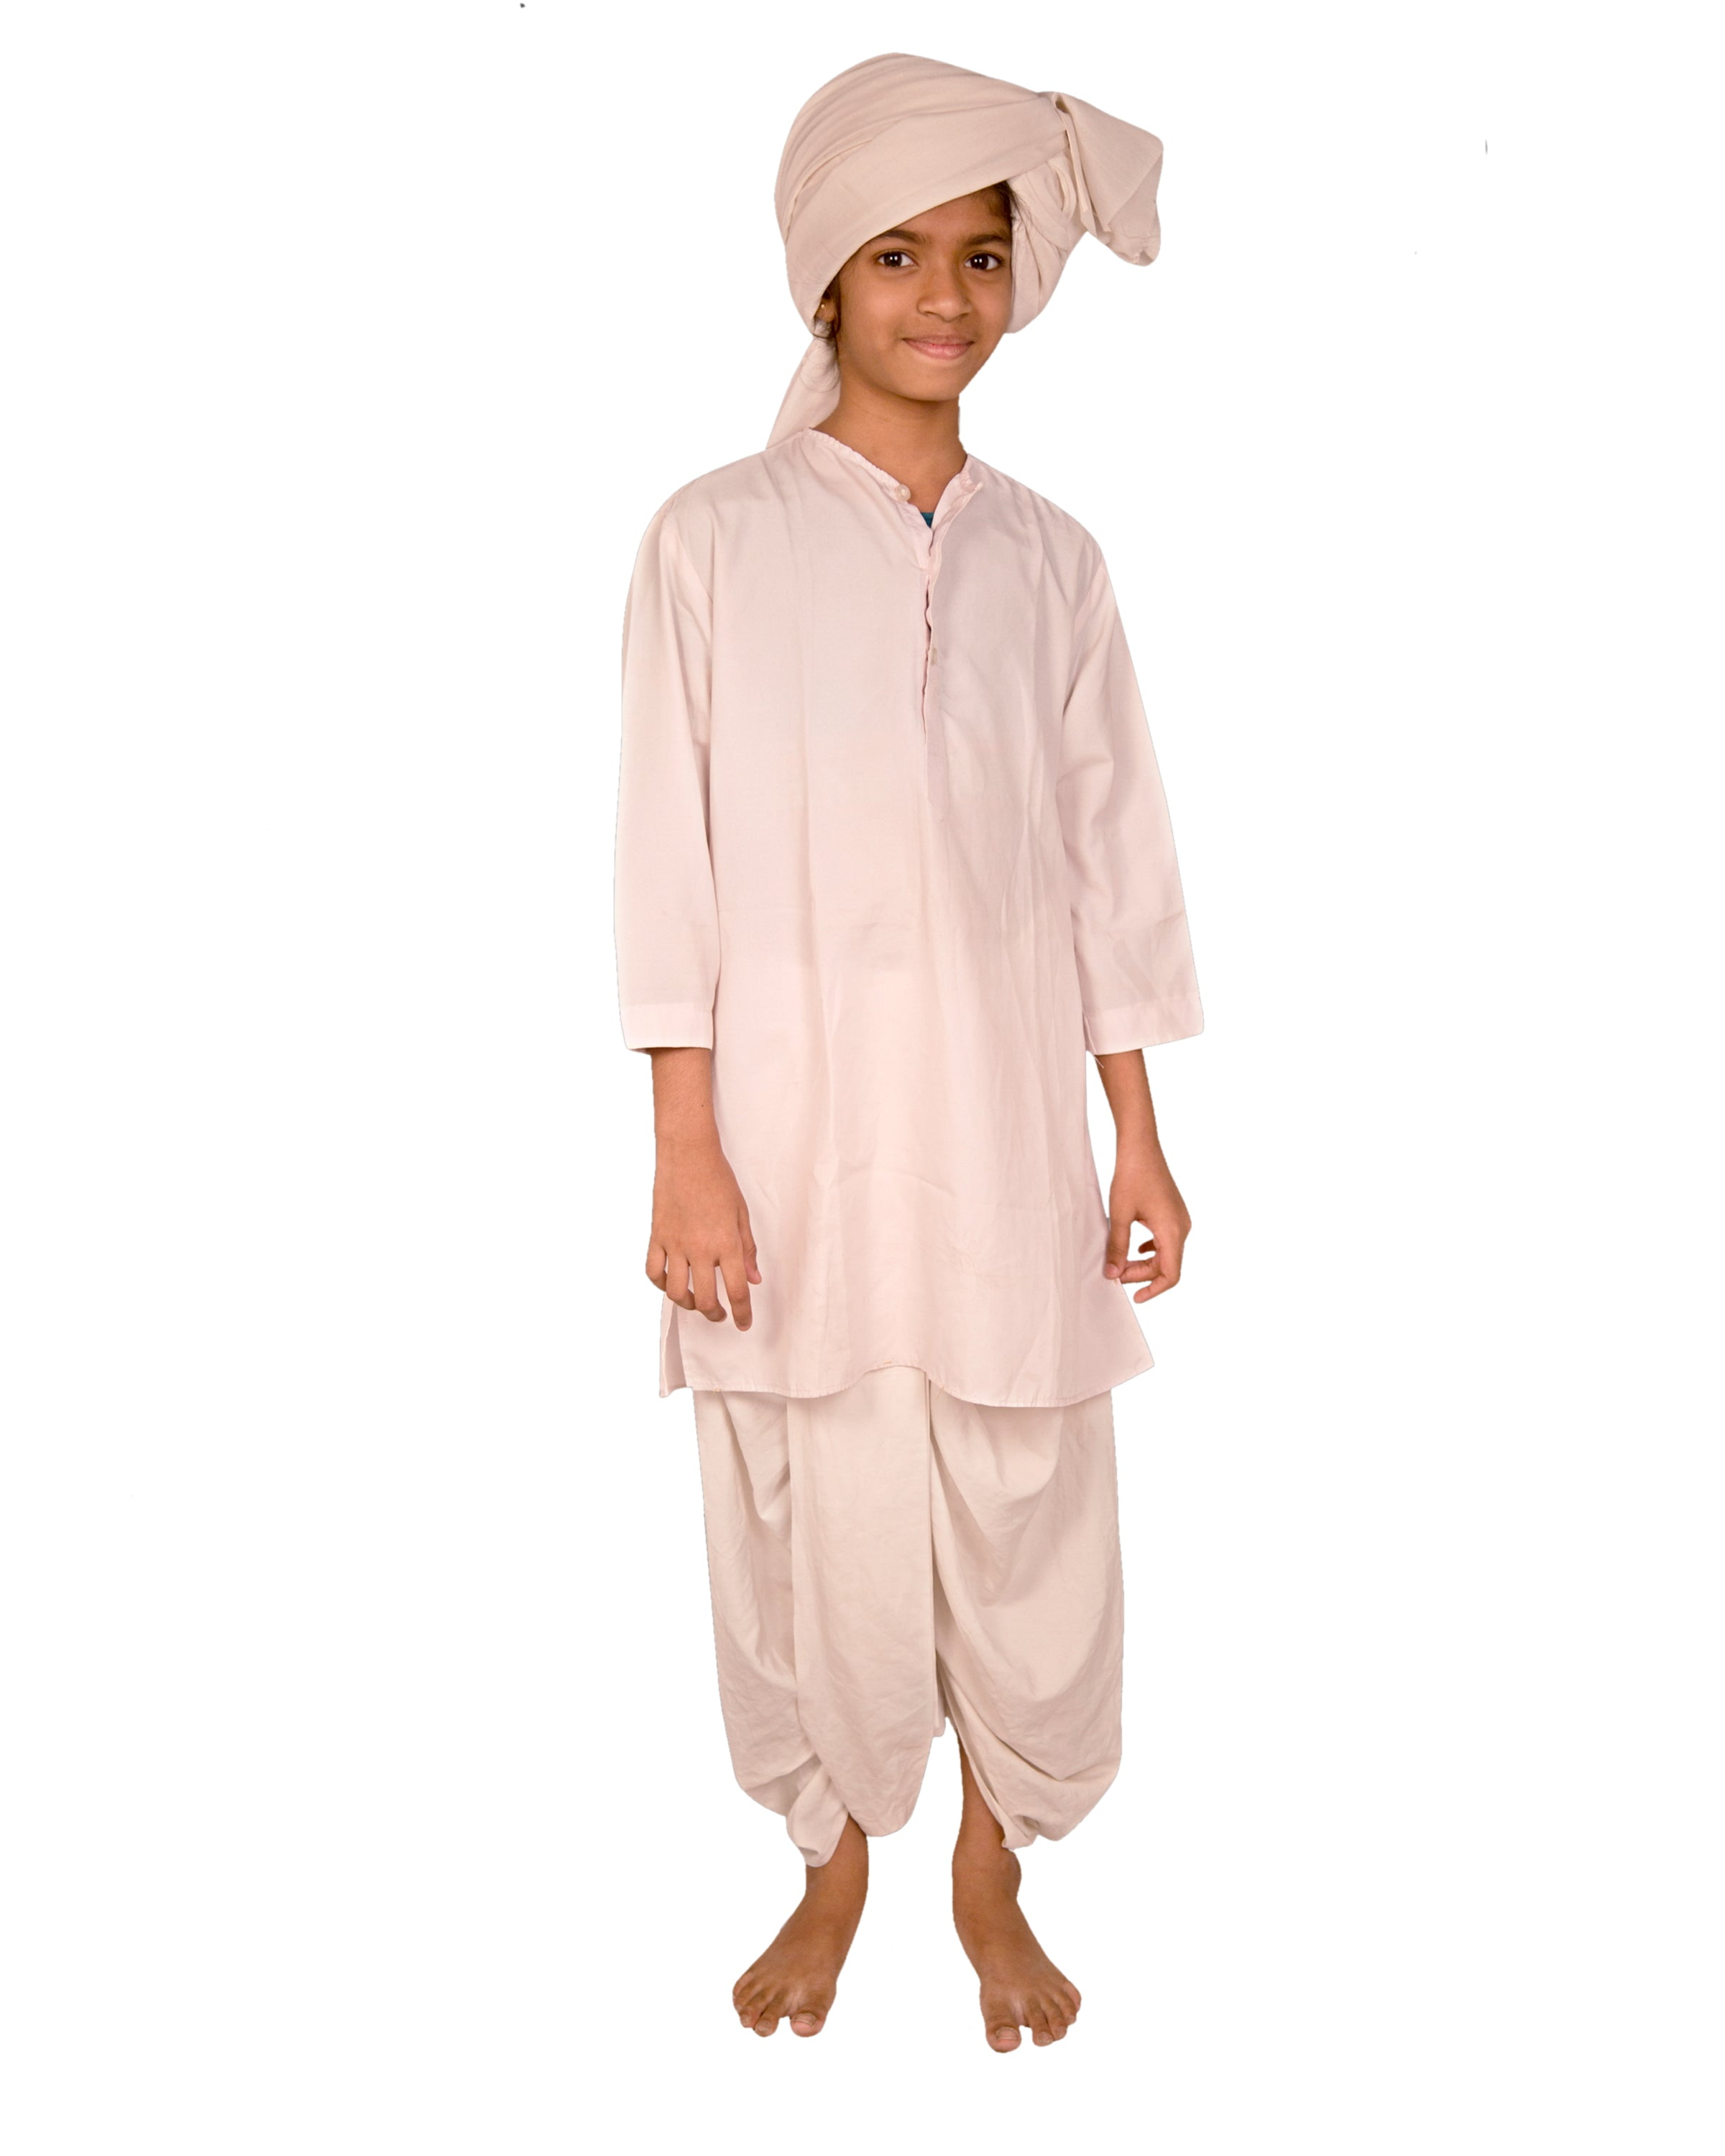 Vallabh bhai patel Costume